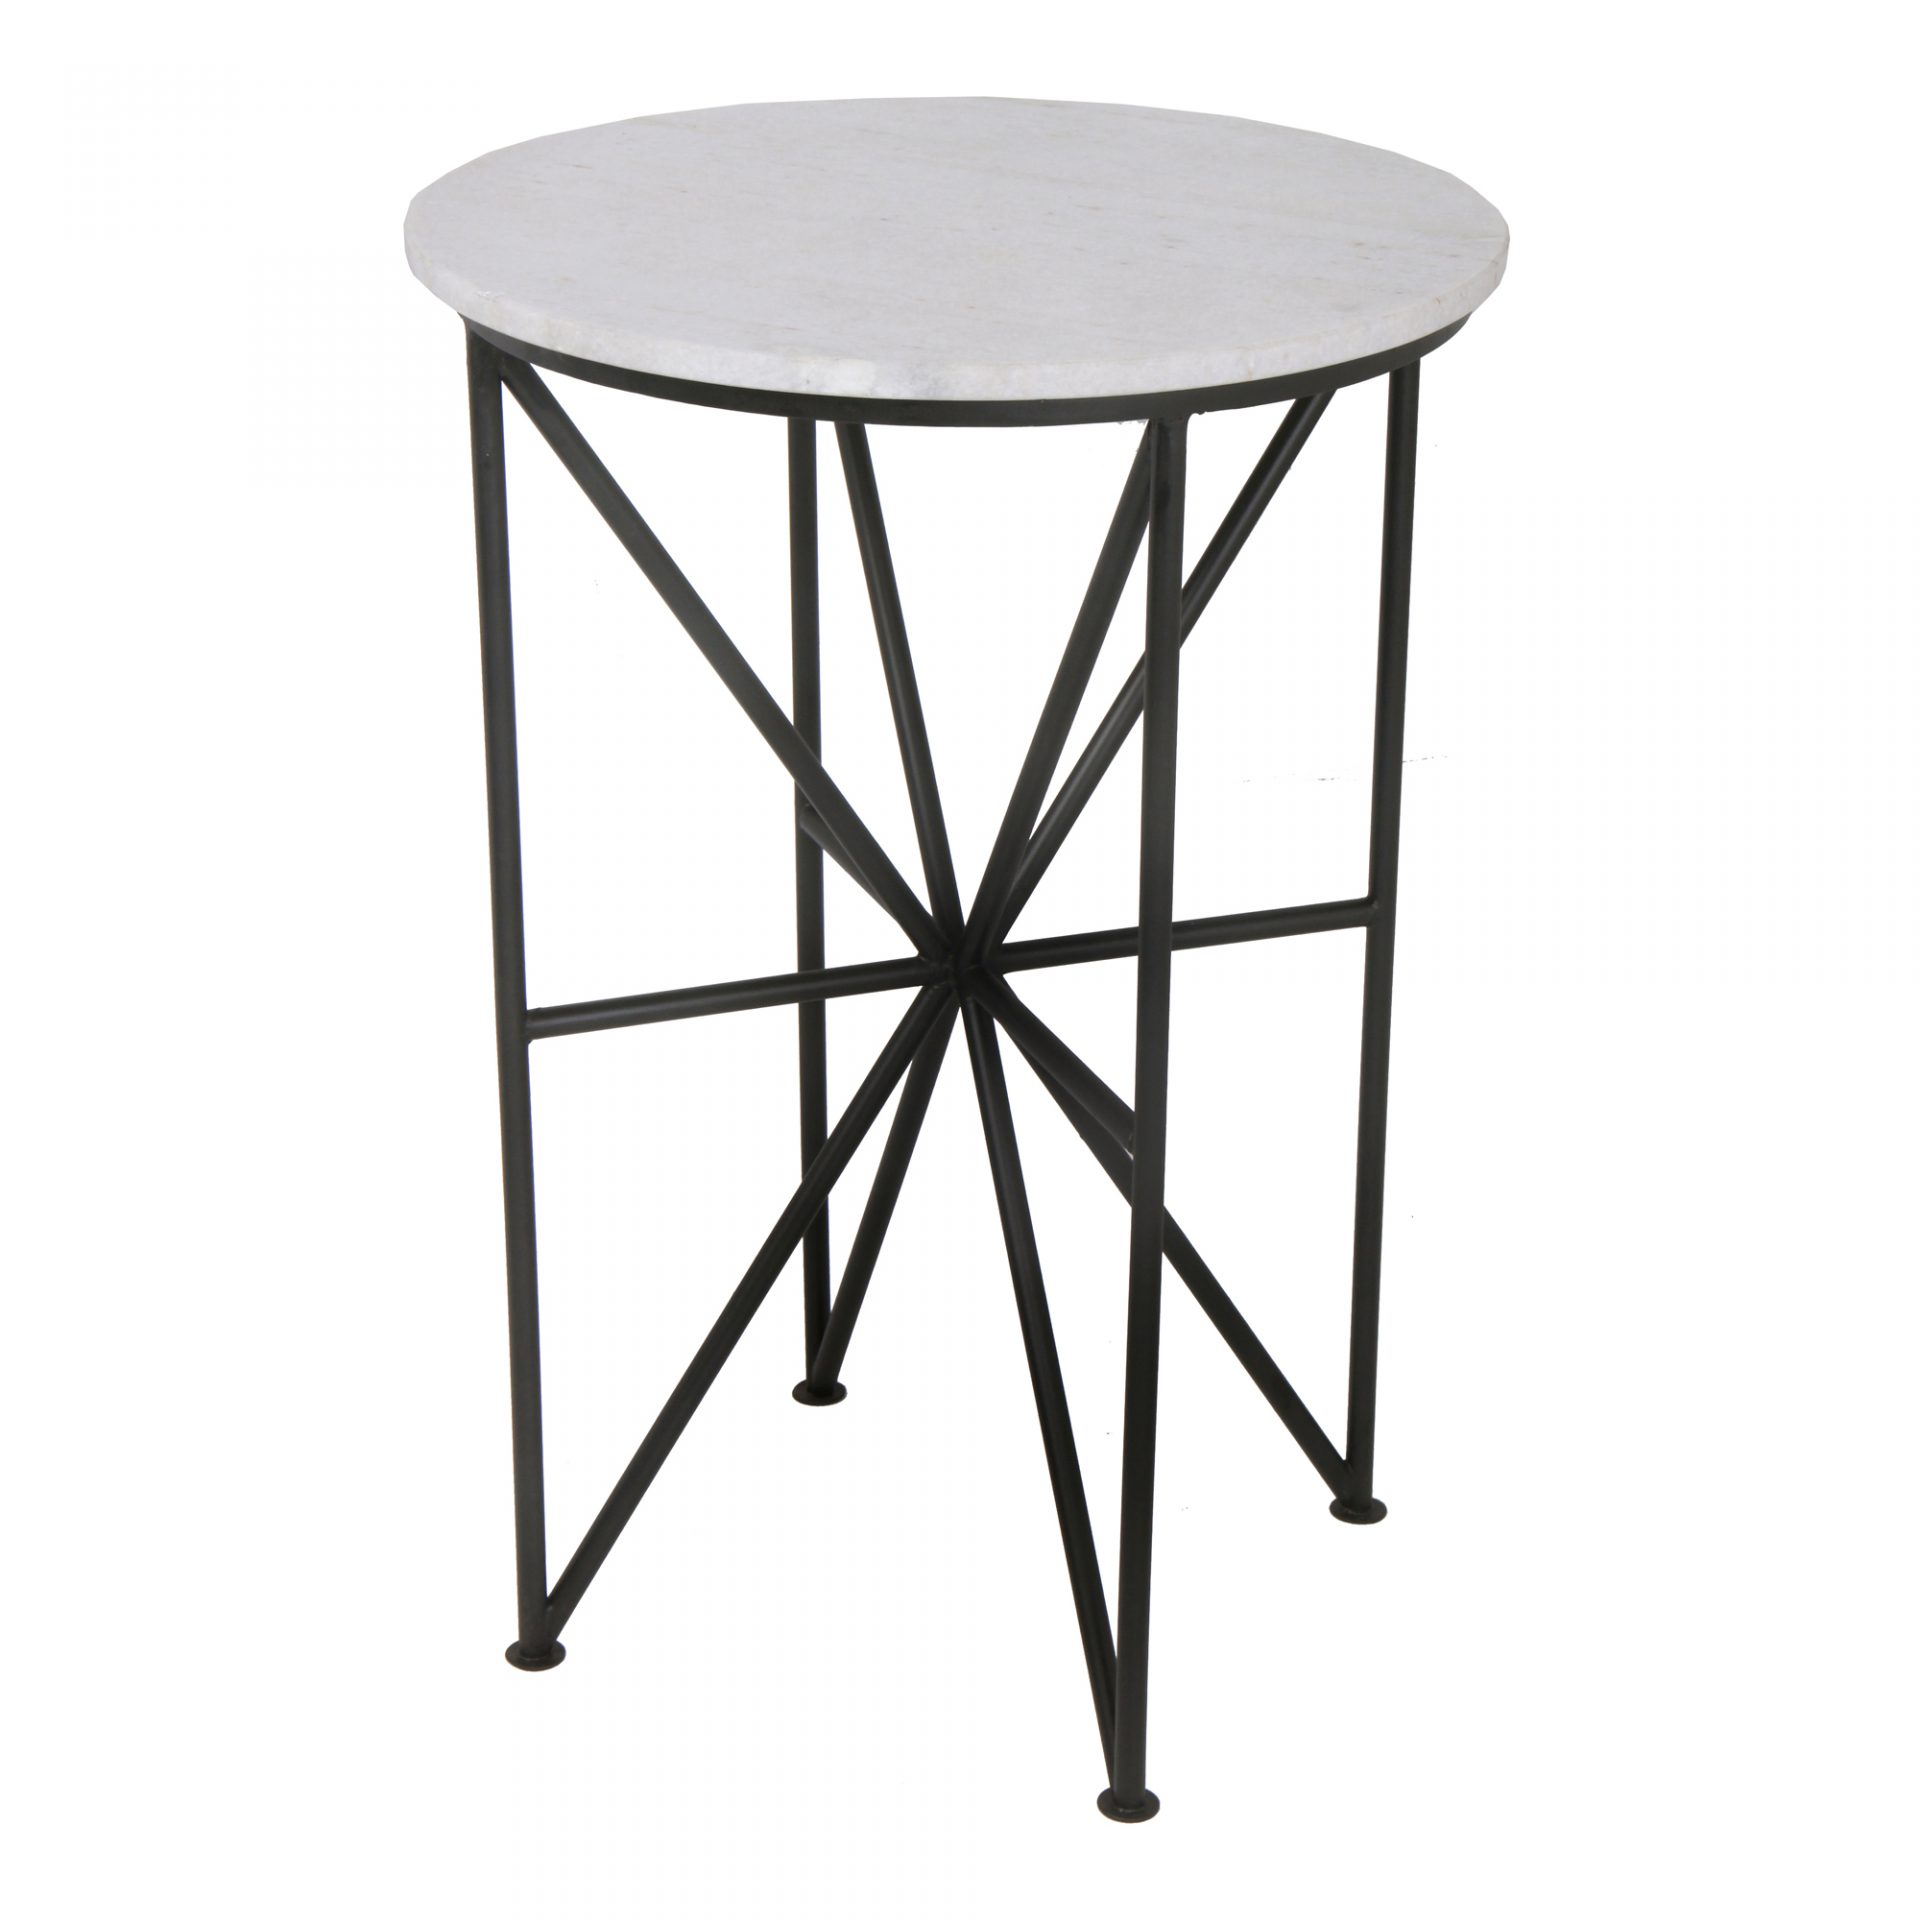 accent tables categories moe whole outdoor folding table quadrant marble diy metal legs hollywood glam furniture coffee linen astoria grand bedroom sets dining cover pottery barn